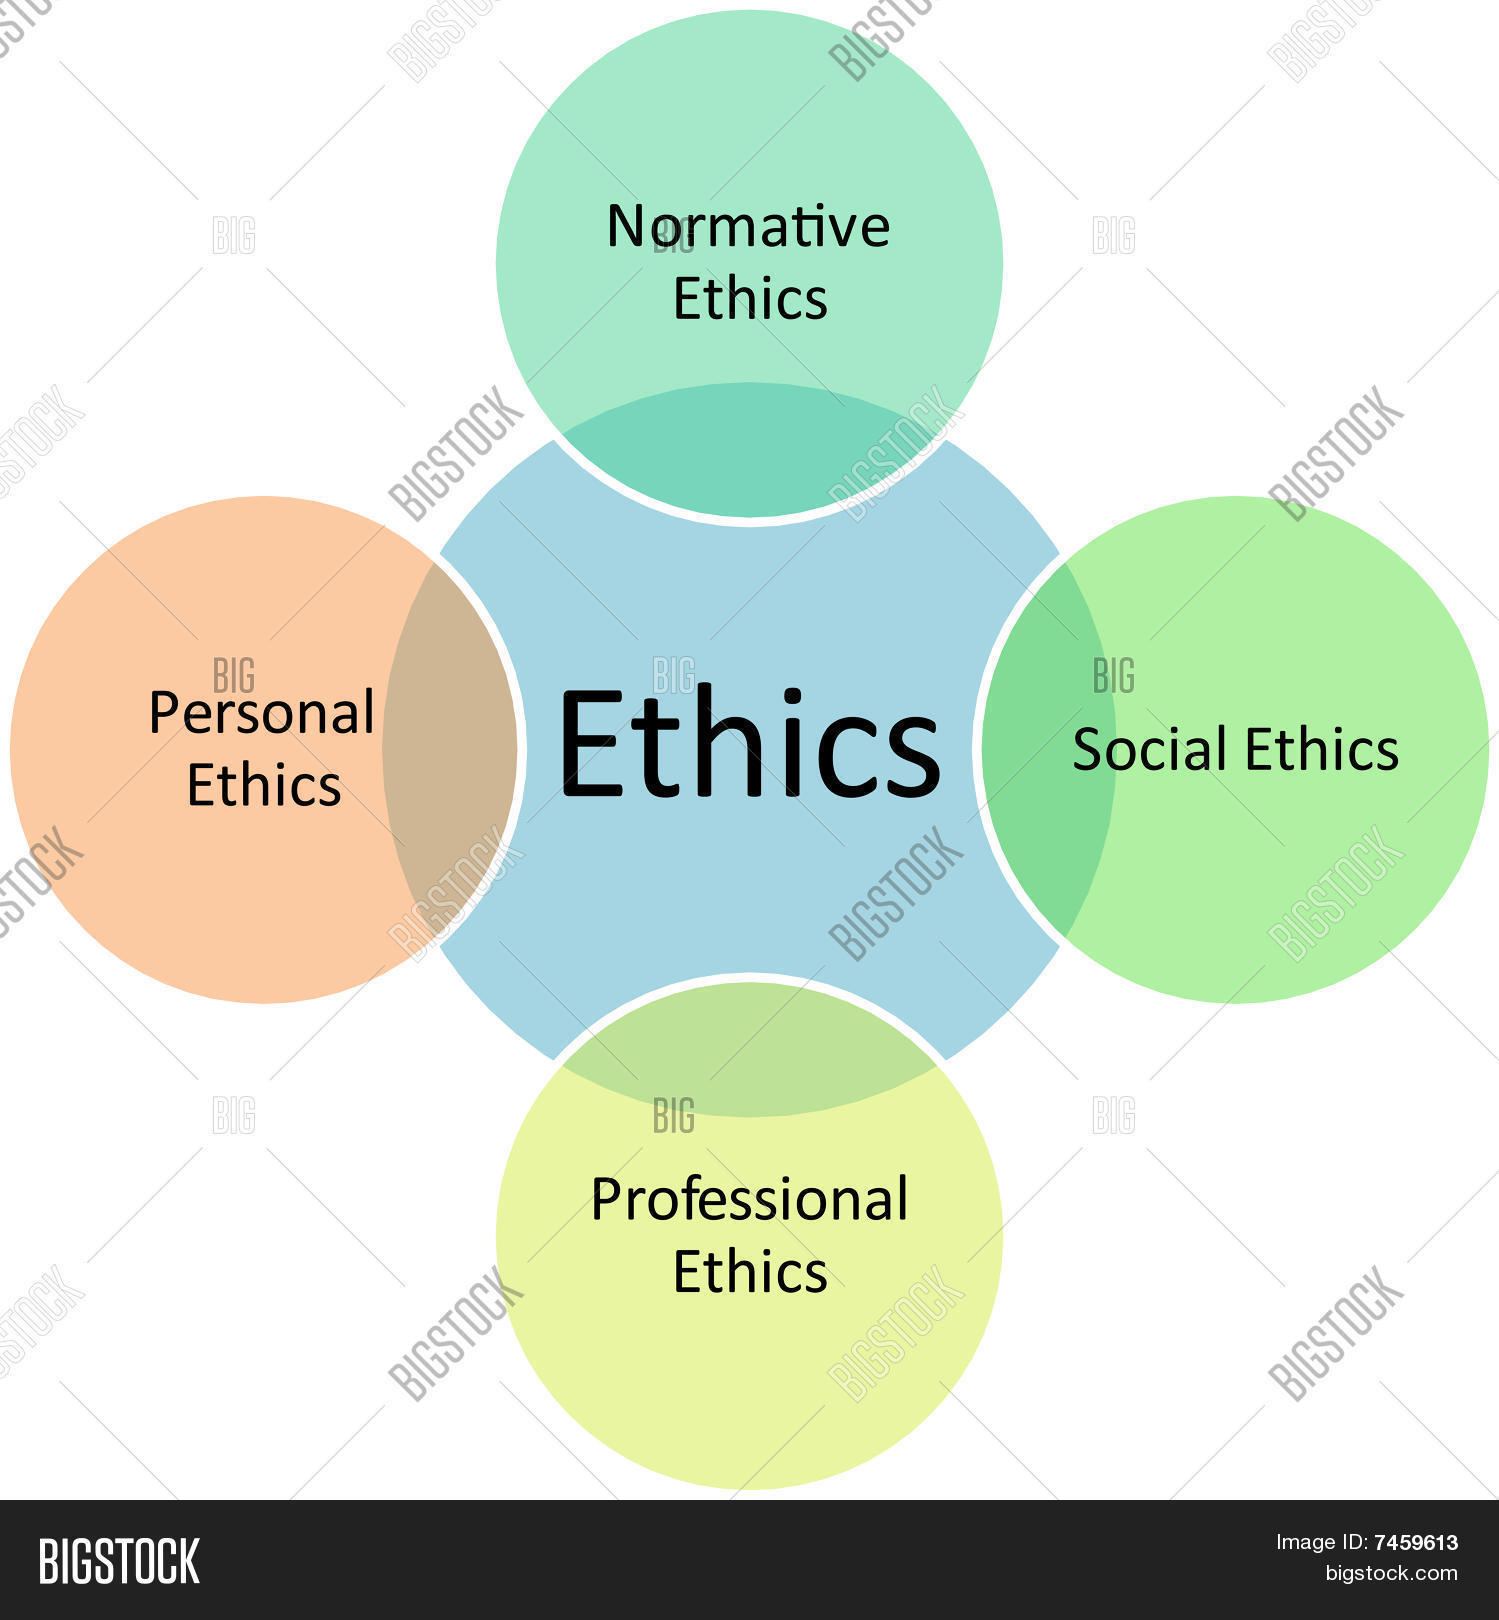 Ethics types business image photo free trial bigstock ethics types business diagram ccuart Images